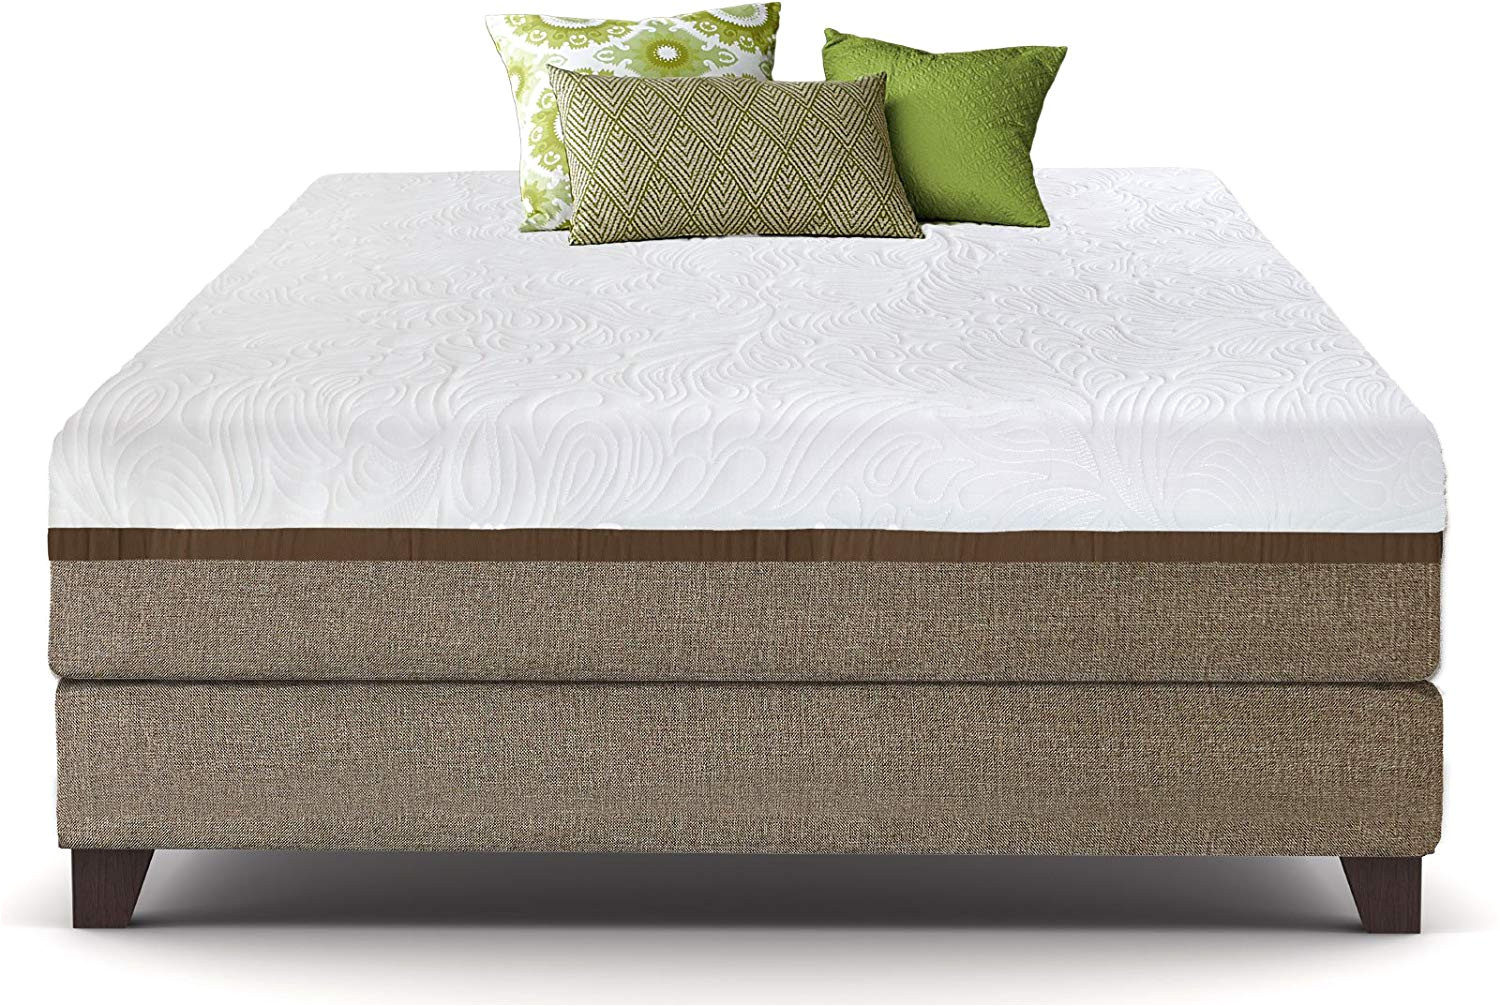 Extra Strong Bed Frame Amazon Com Live and Sleep Ultra California King Mattress Gel